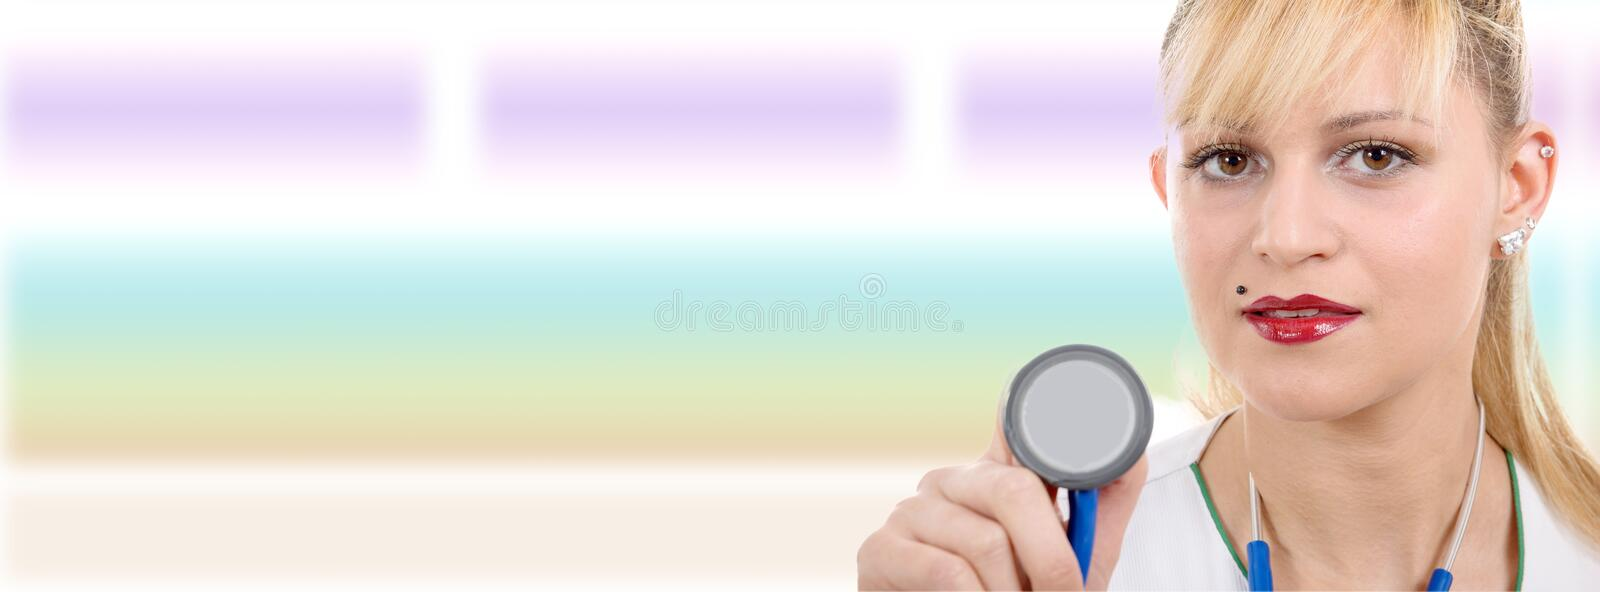 Pretty young blonde woman doctor with stethoscope royalty free stock photos